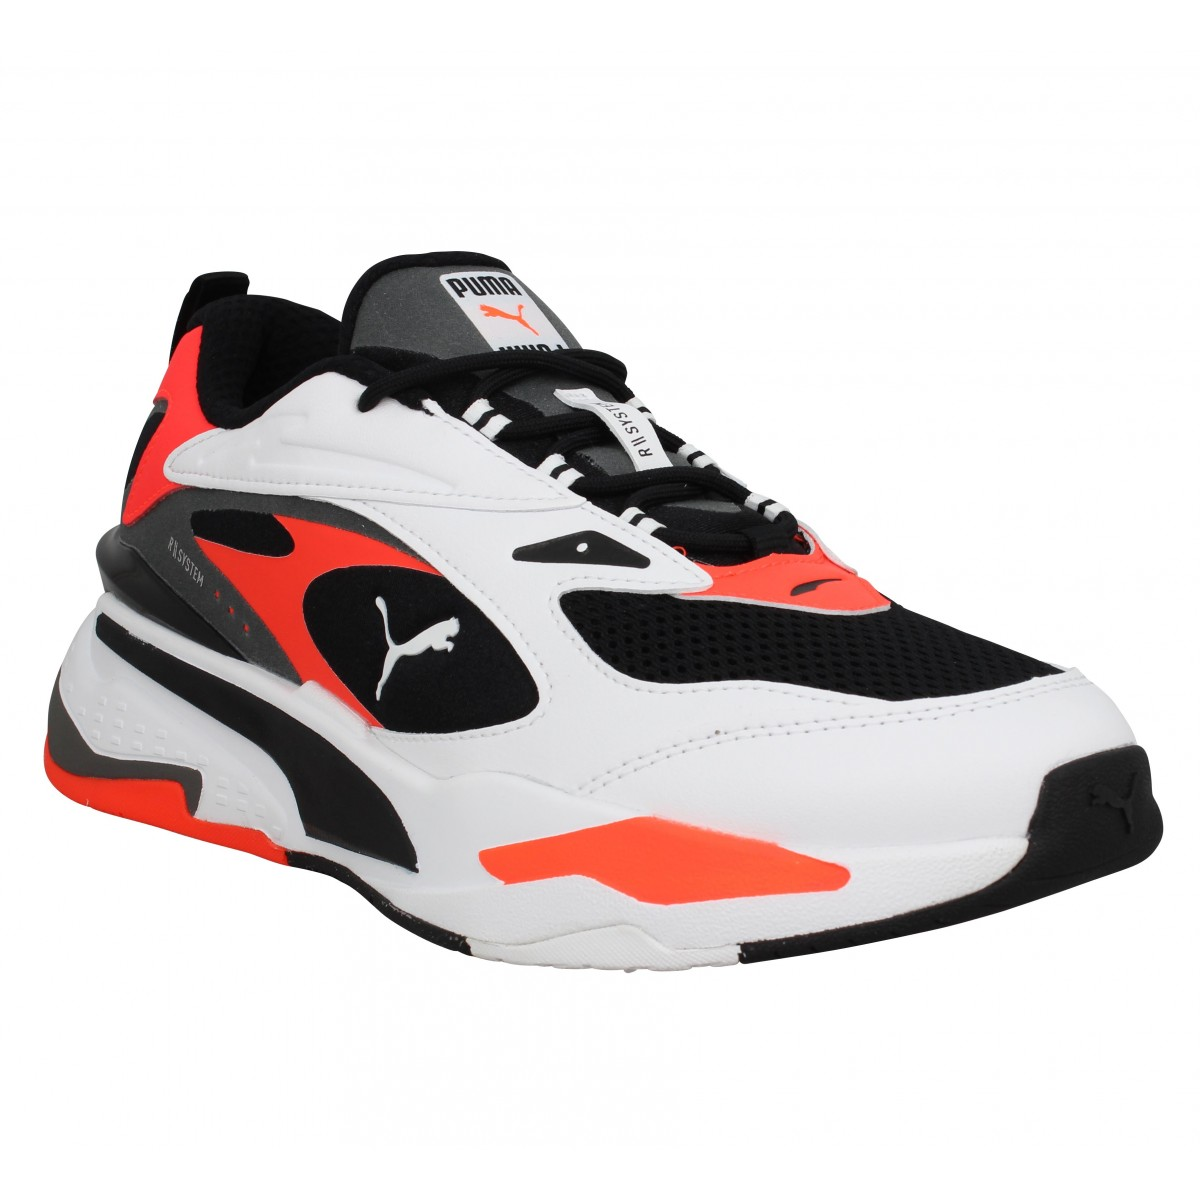 Puma Homme Rs-fast Toile -40-blanc Rouge